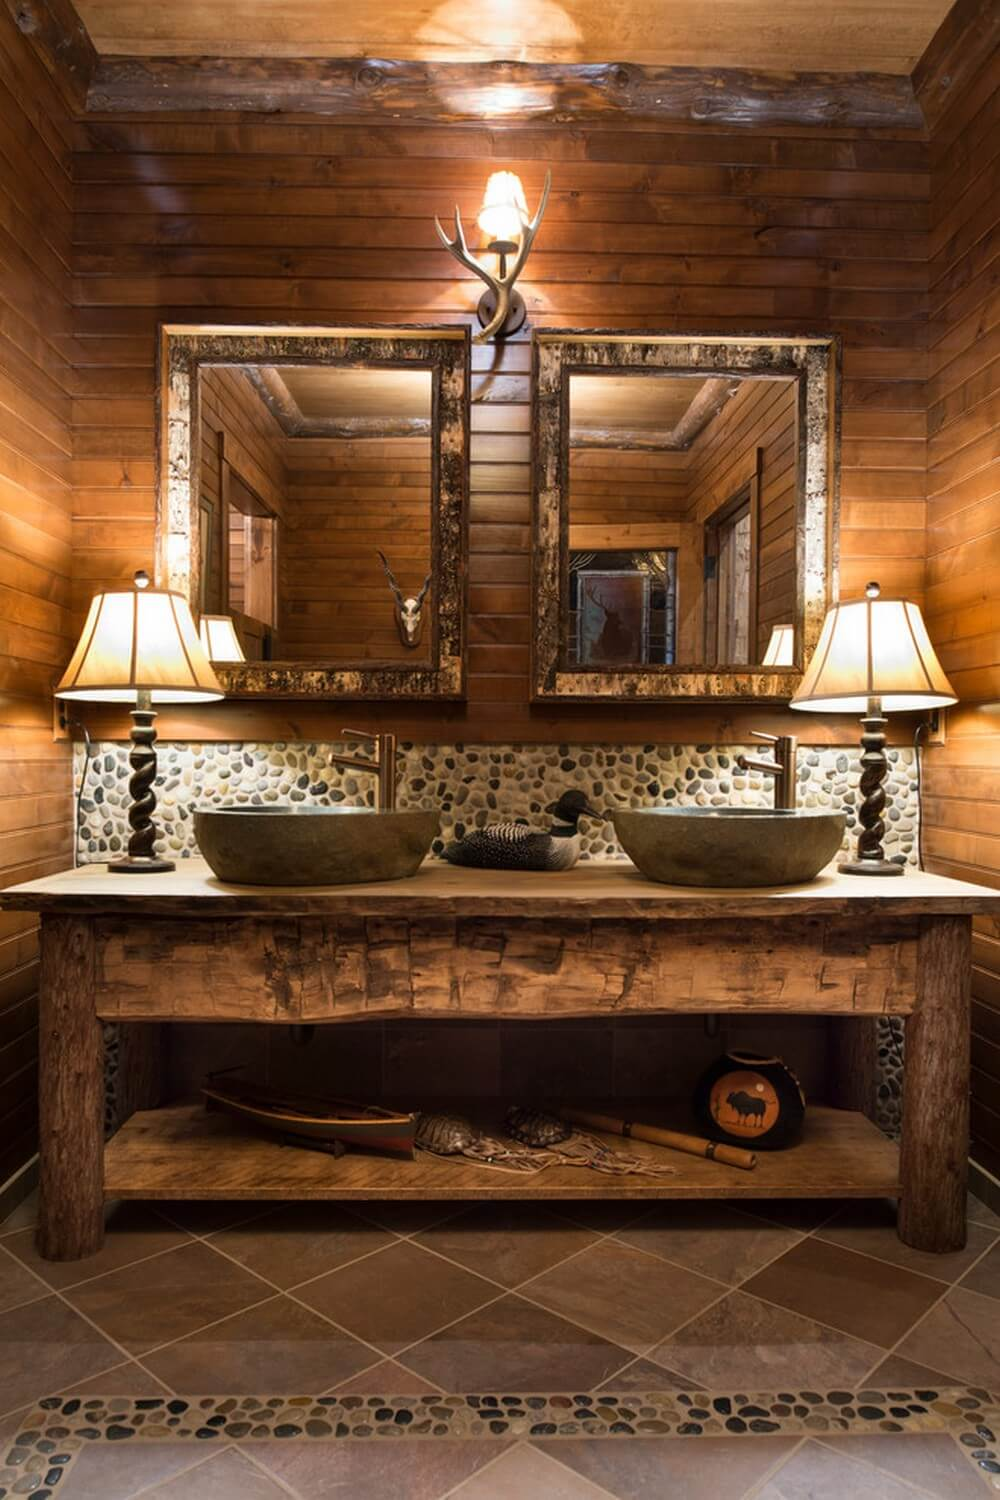 Dark Rustic Bathroom Table with Bowl Sinks